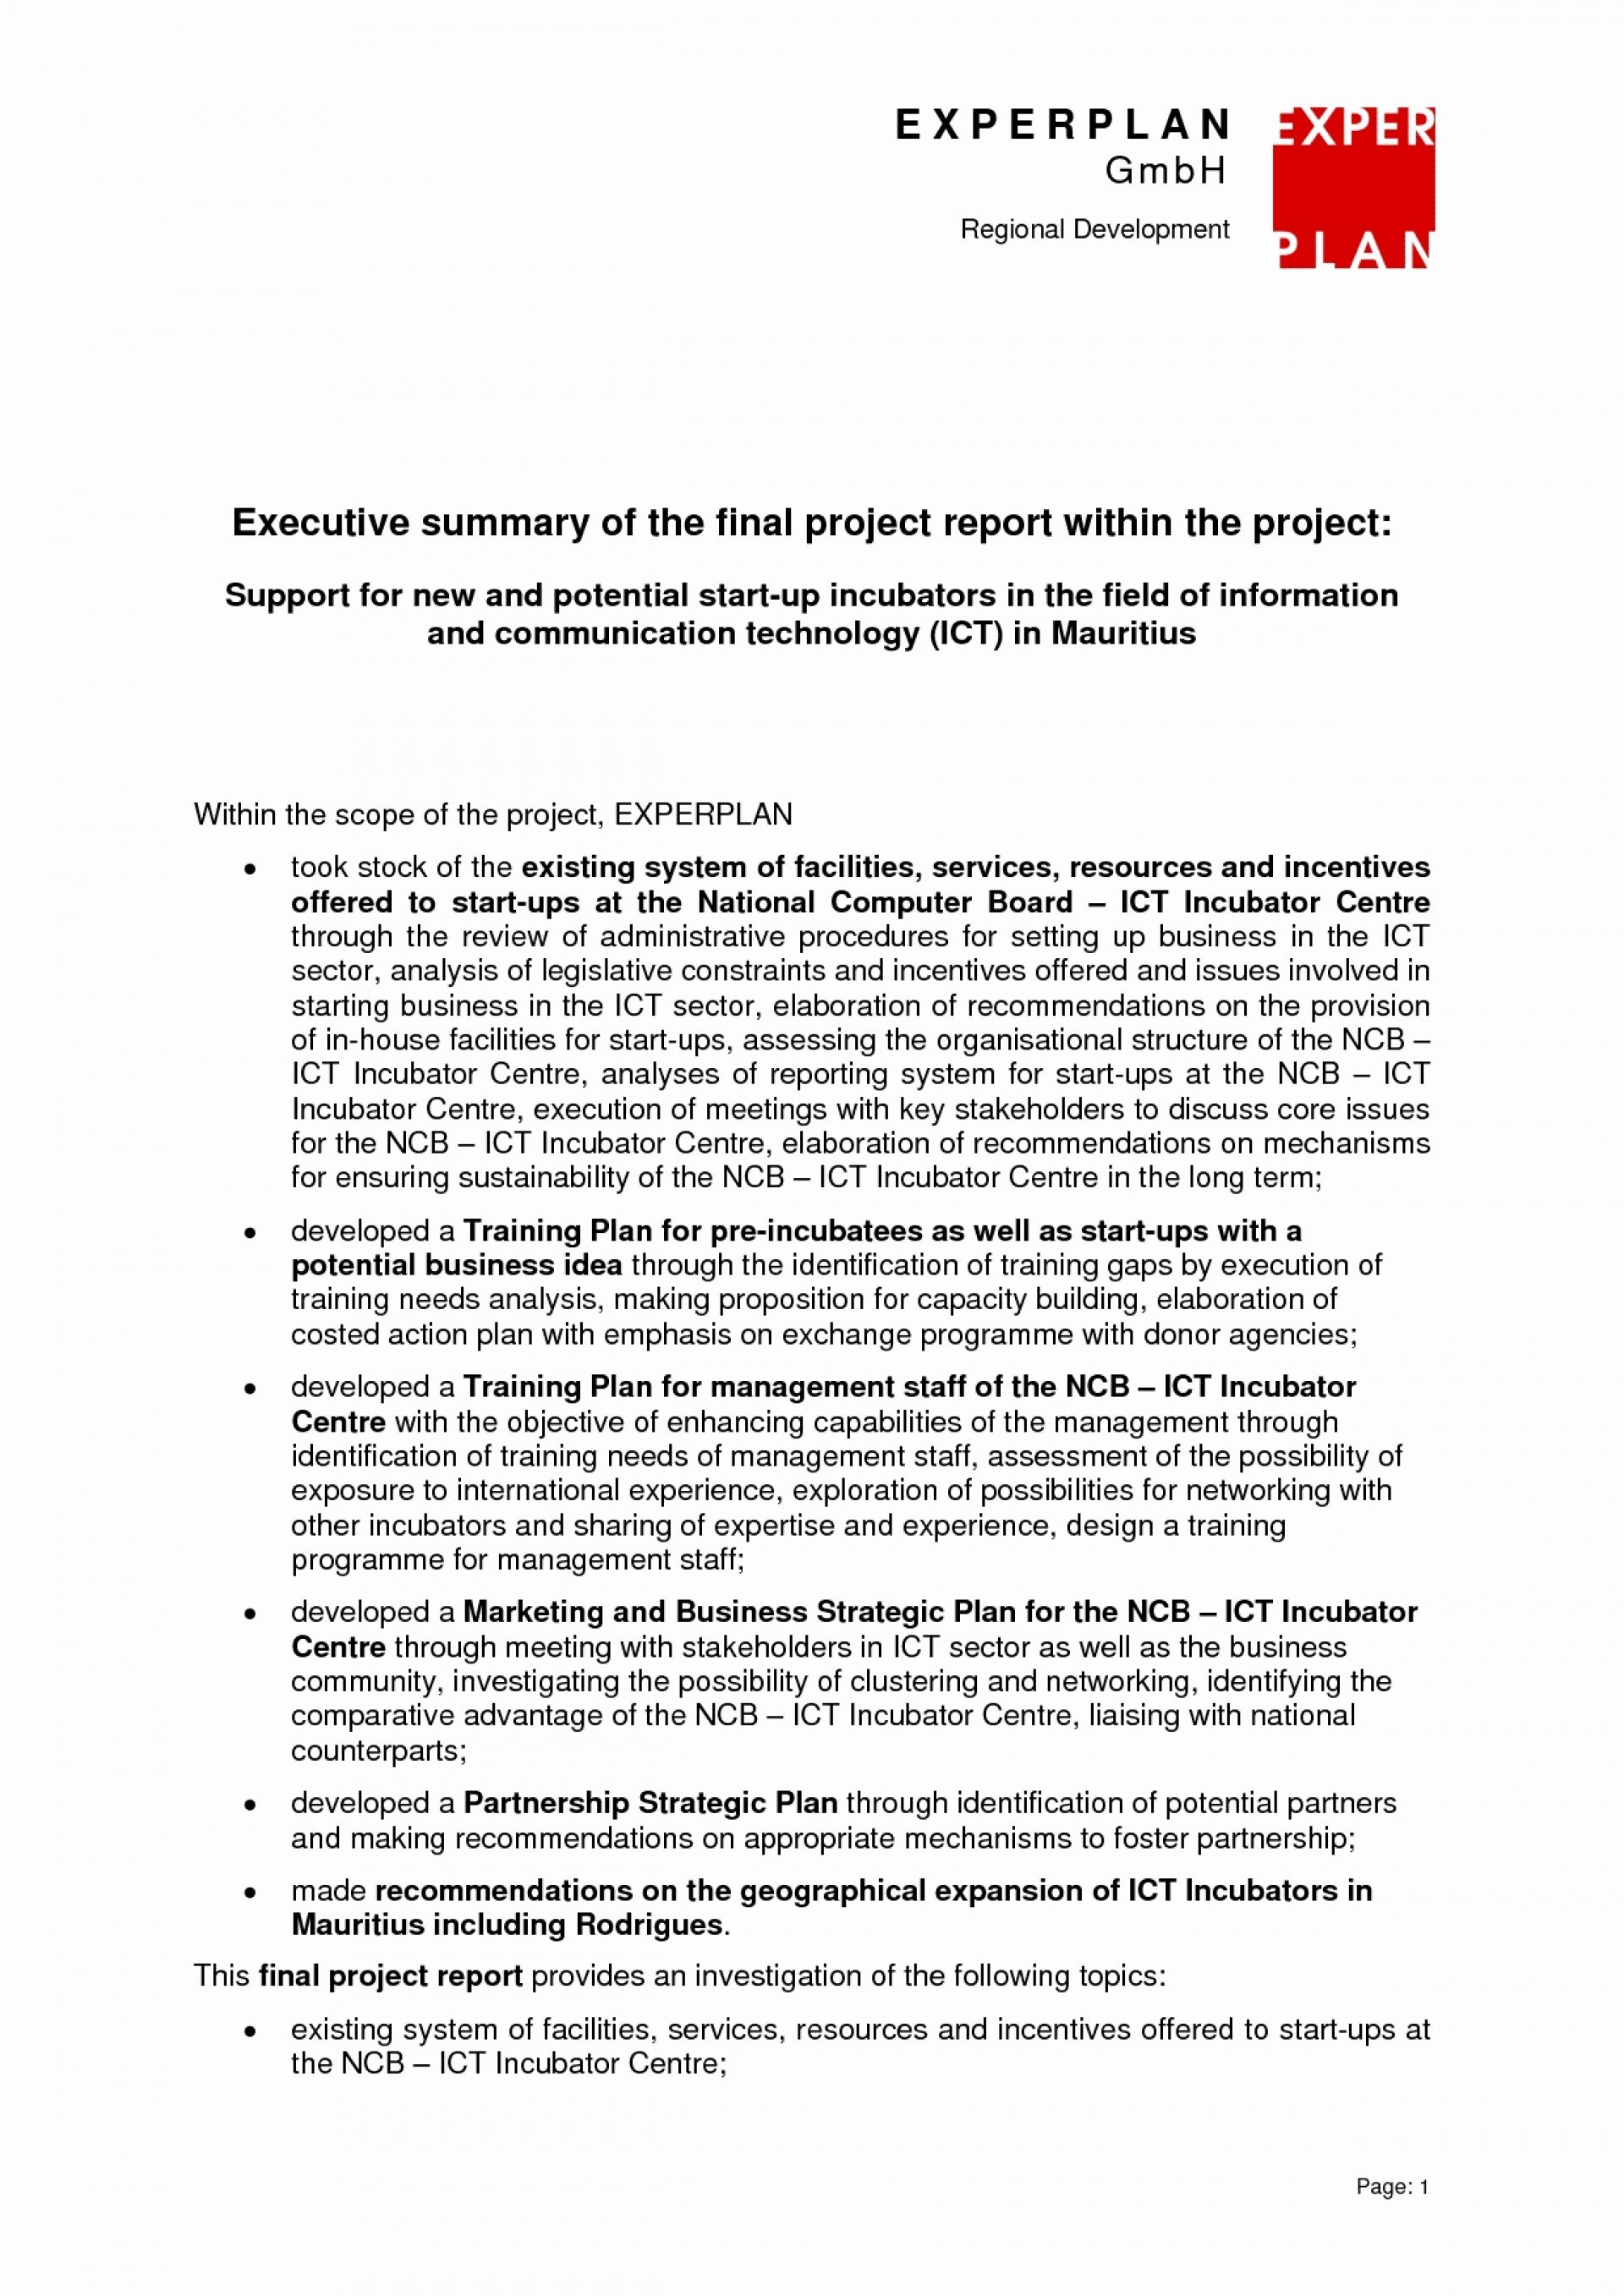 006 Research Paper 20project Management Summary Template Plan Executive Example Luxury Experience Linkedin20 Of Fantastic A 1920